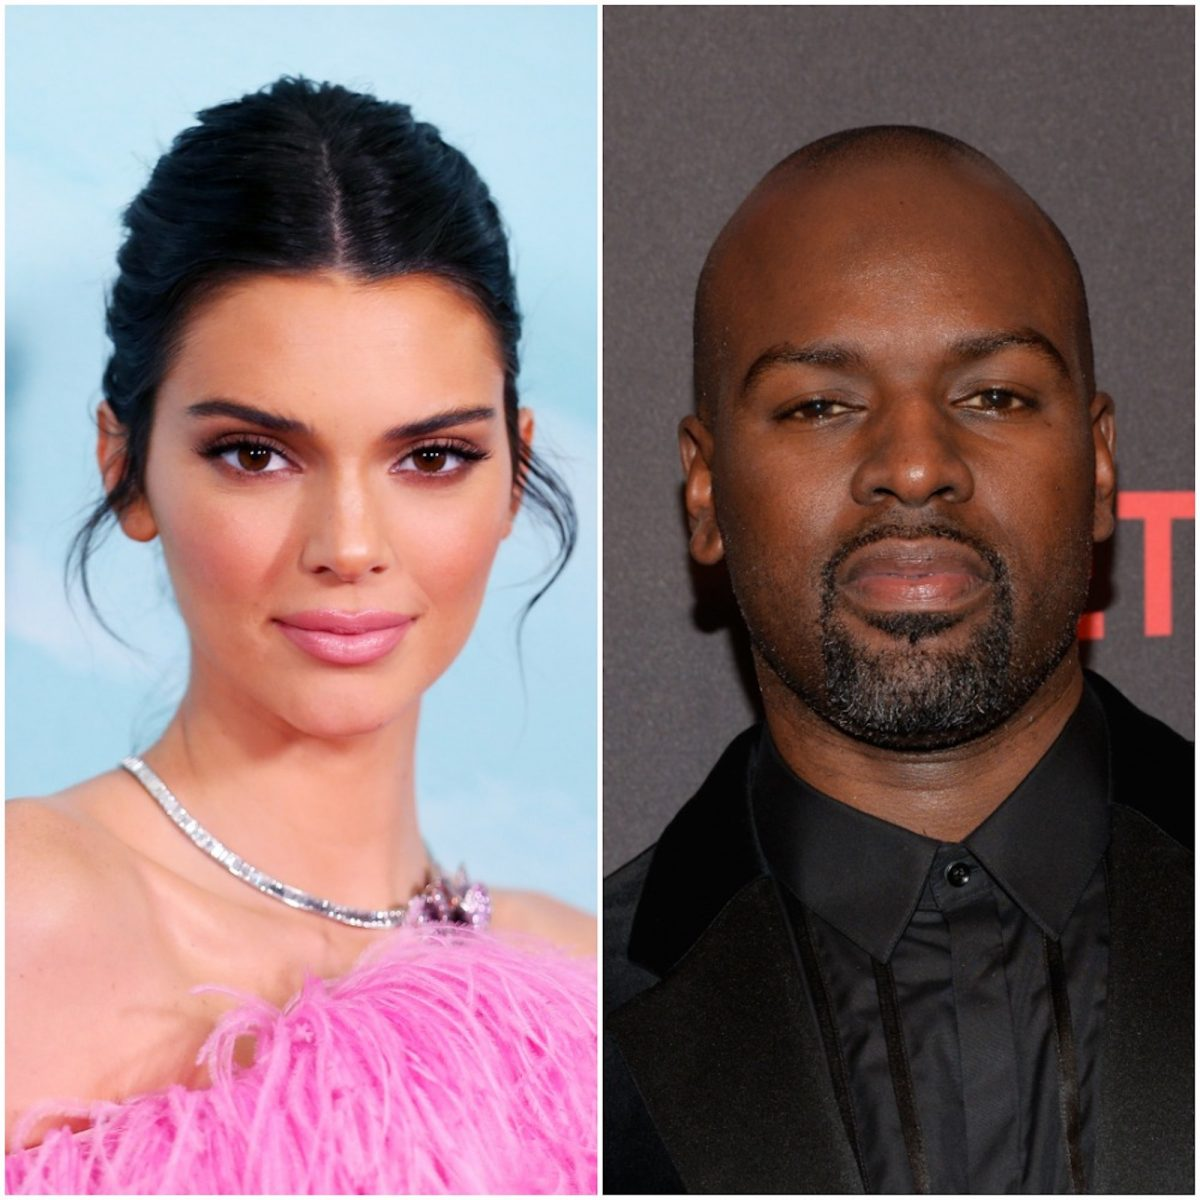 Kendall Jenner and Corey Gamble